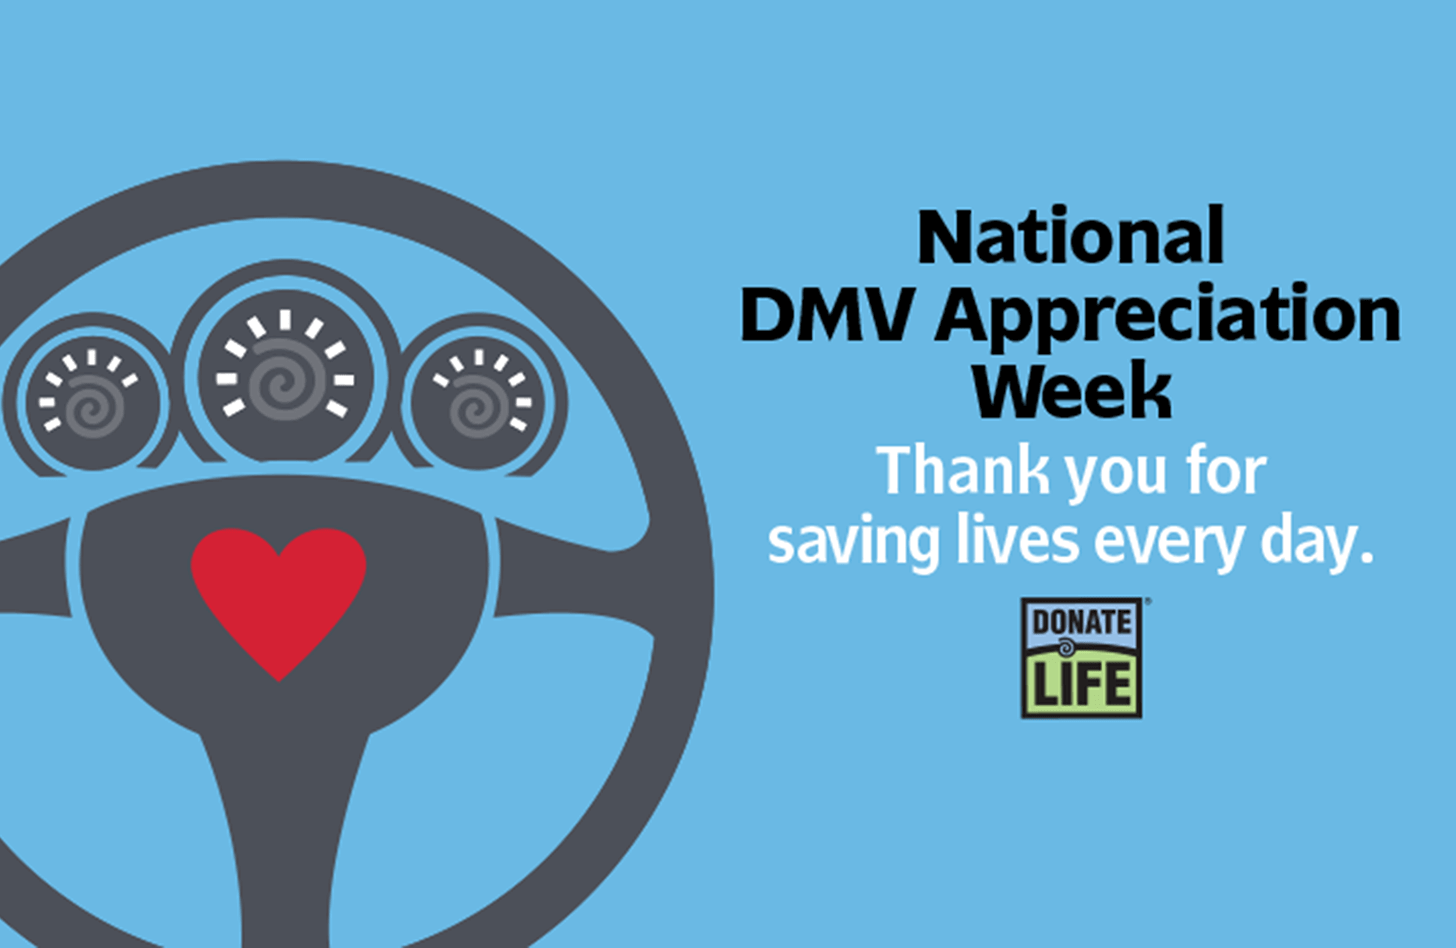 National DMV Appreciation Week Graphic